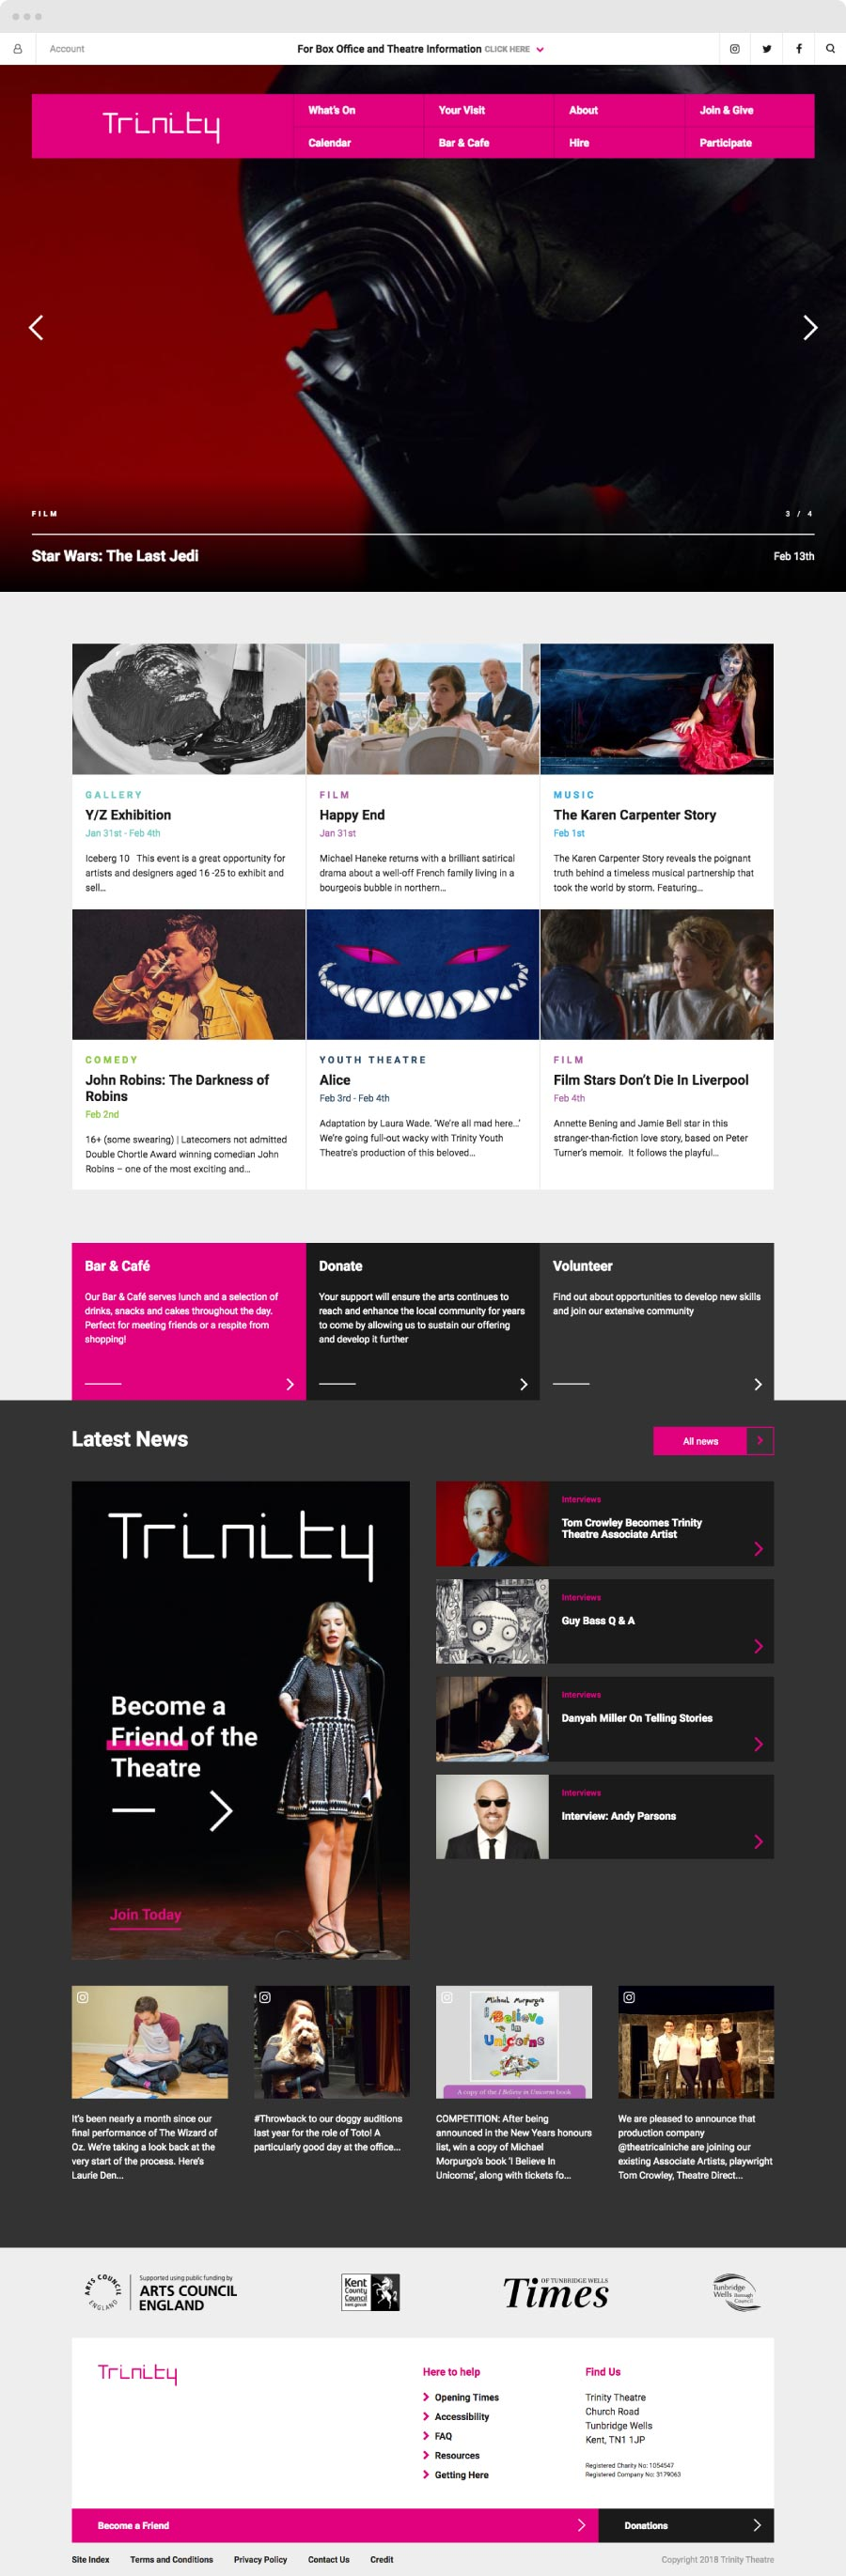 Trinity Theatre Website pages shots